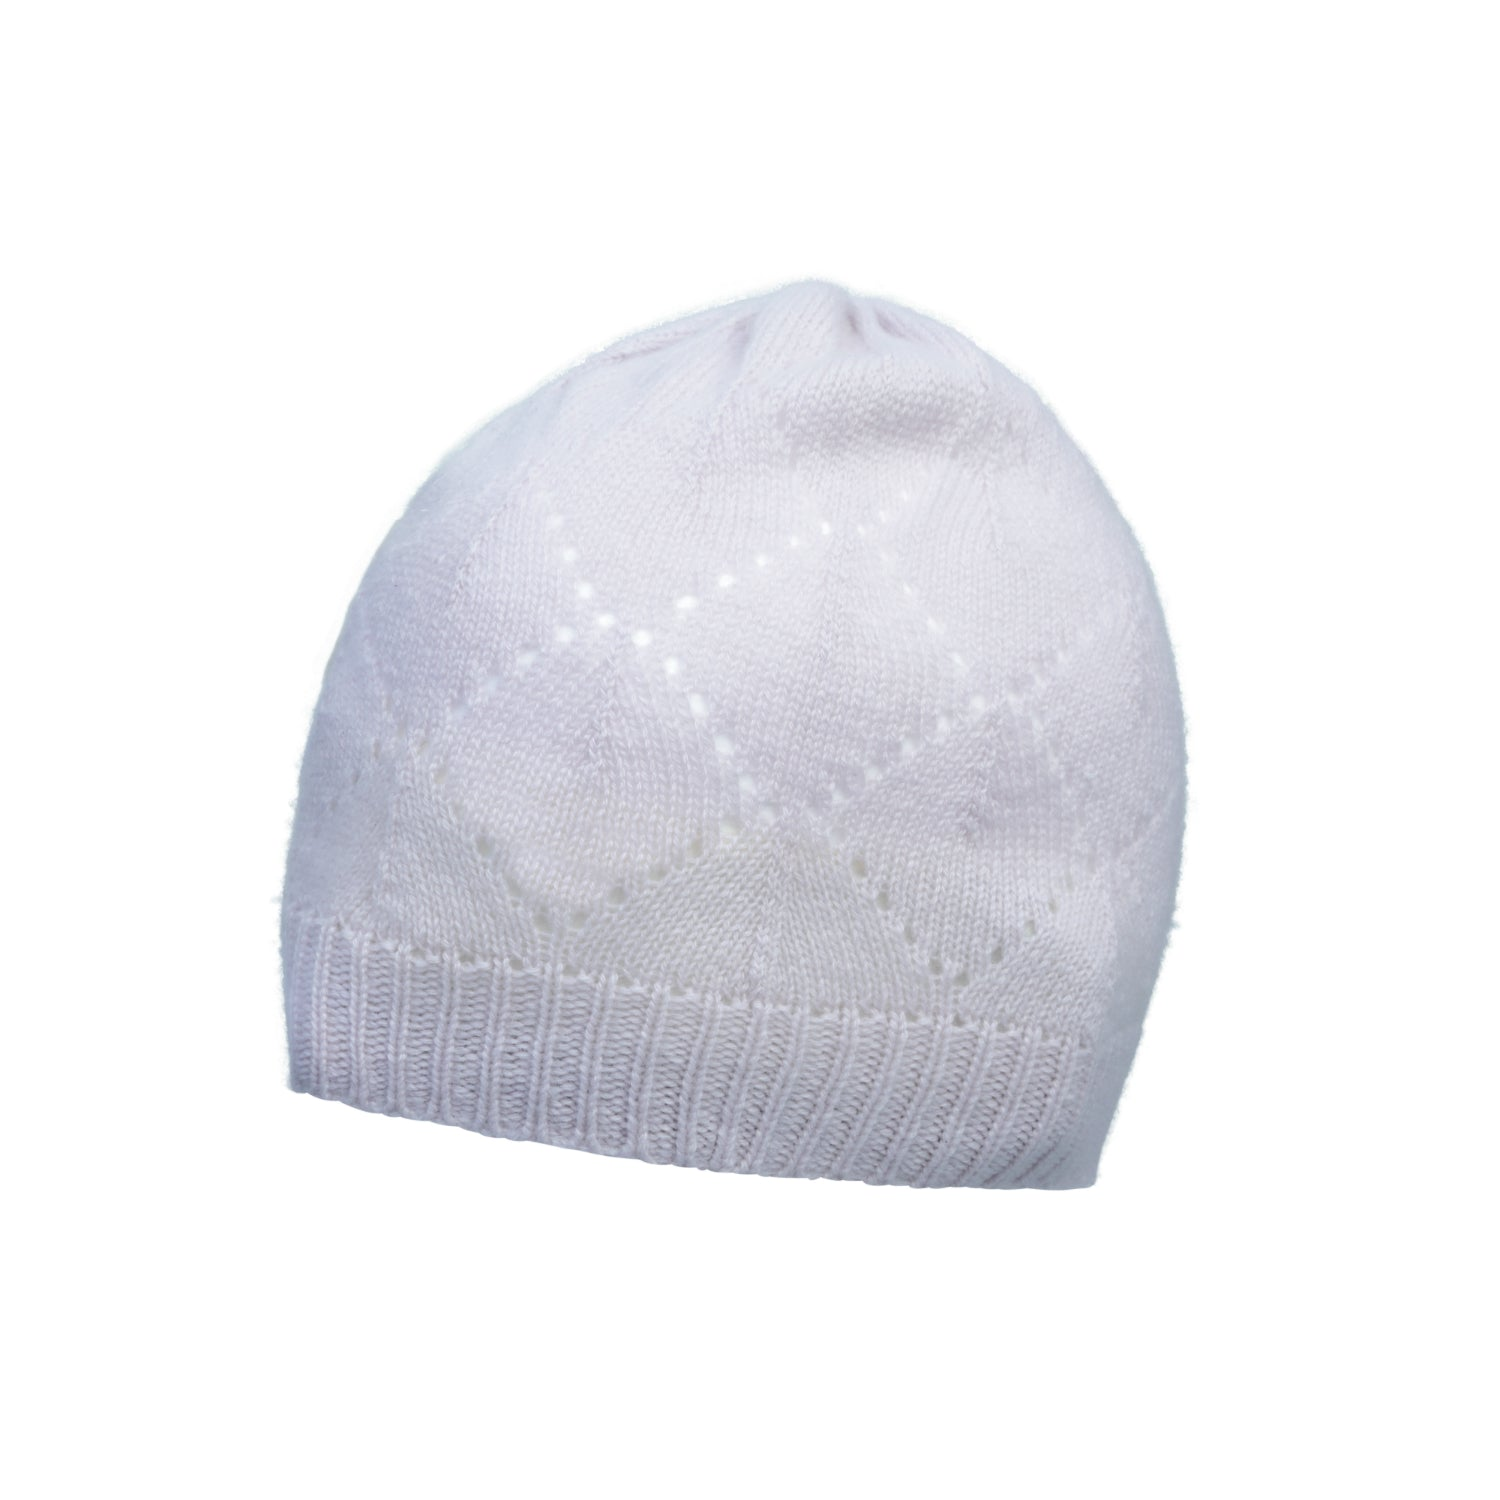 51398ea0cb863 Johnstons Cashmere - Pointelle Knit - Pure Cashmere Beanie - The ...